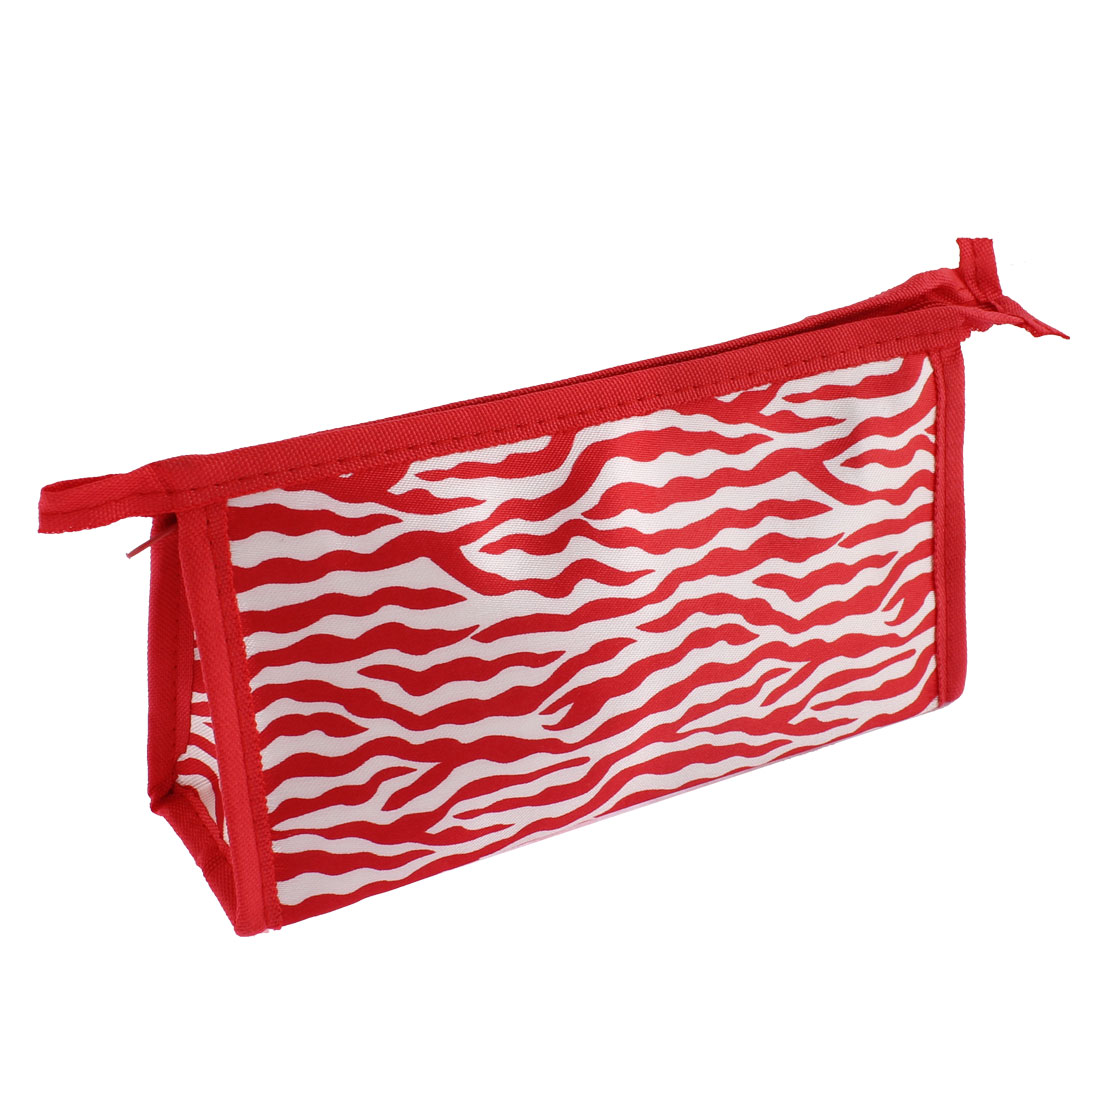 Women Water Wave Pattern Zipper Cosmetic Bag Single Pocket Beauty Makeup Hand Case Container Organizer Red White